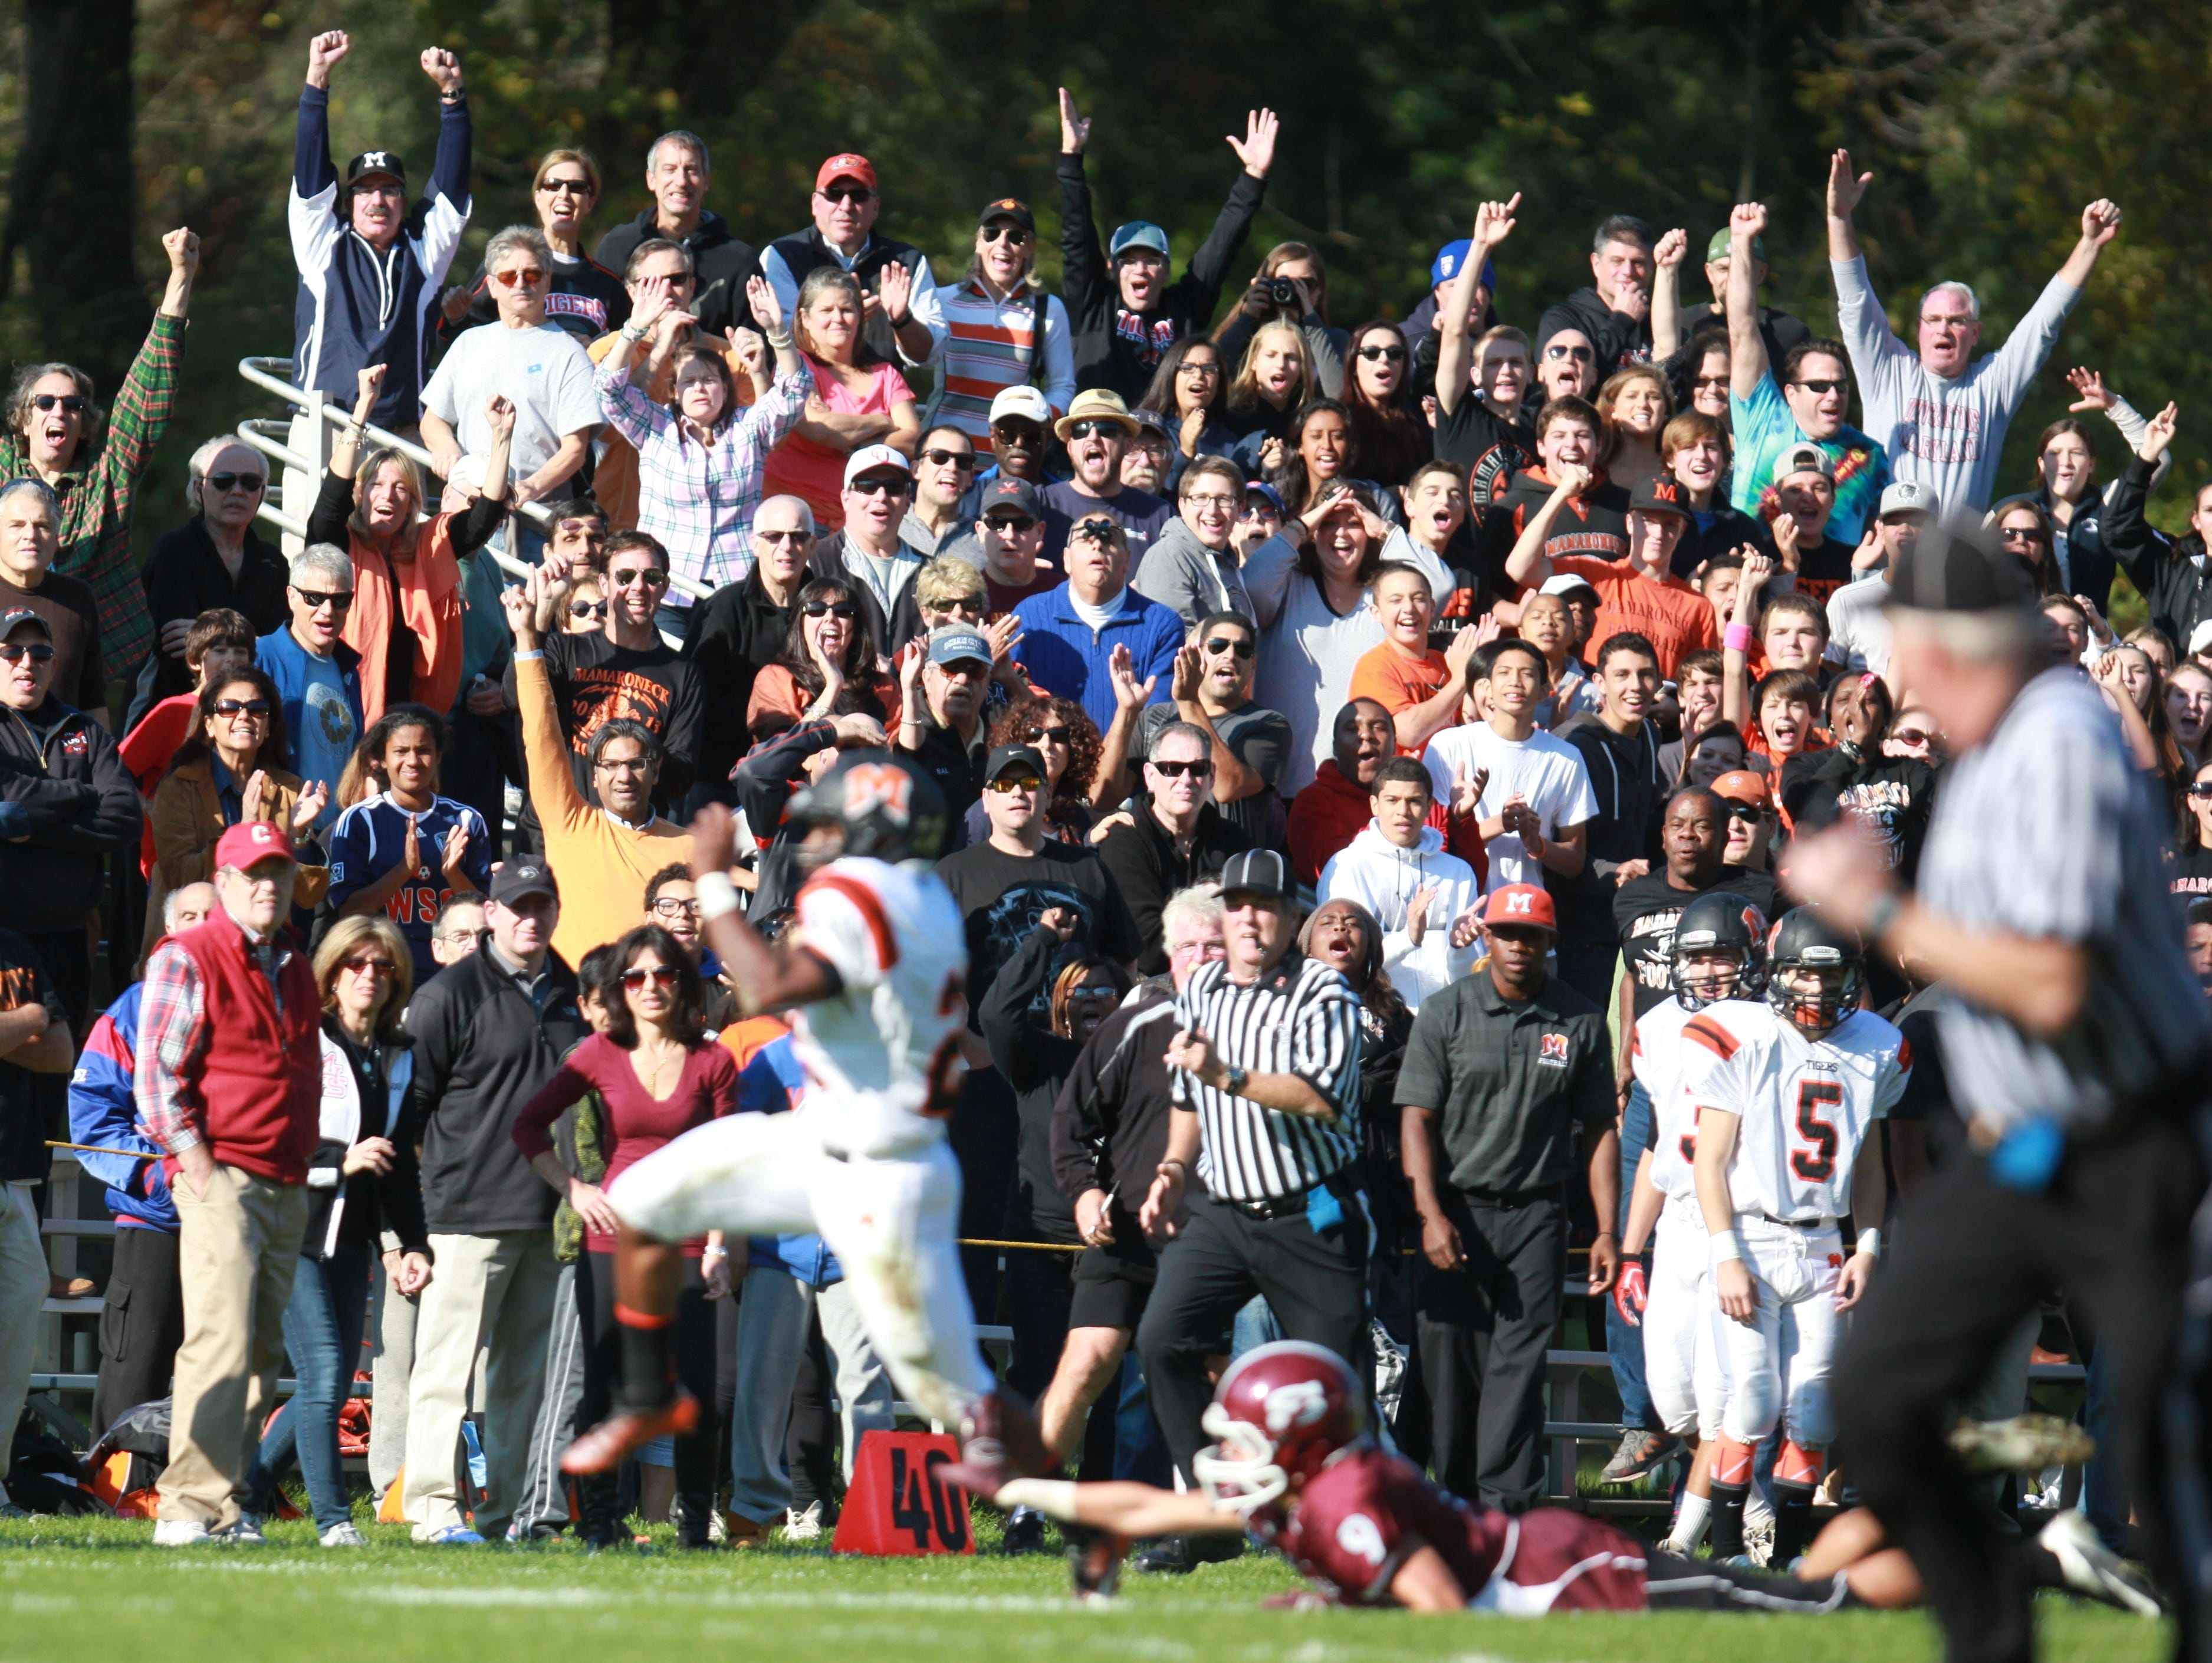 Mamaroneck plays Scarsdale during the Class AA quarterfinal football game at Scarsdale High School on Oct. 25, 2014. Mamaroneck defeated Scarsdale 45-20.